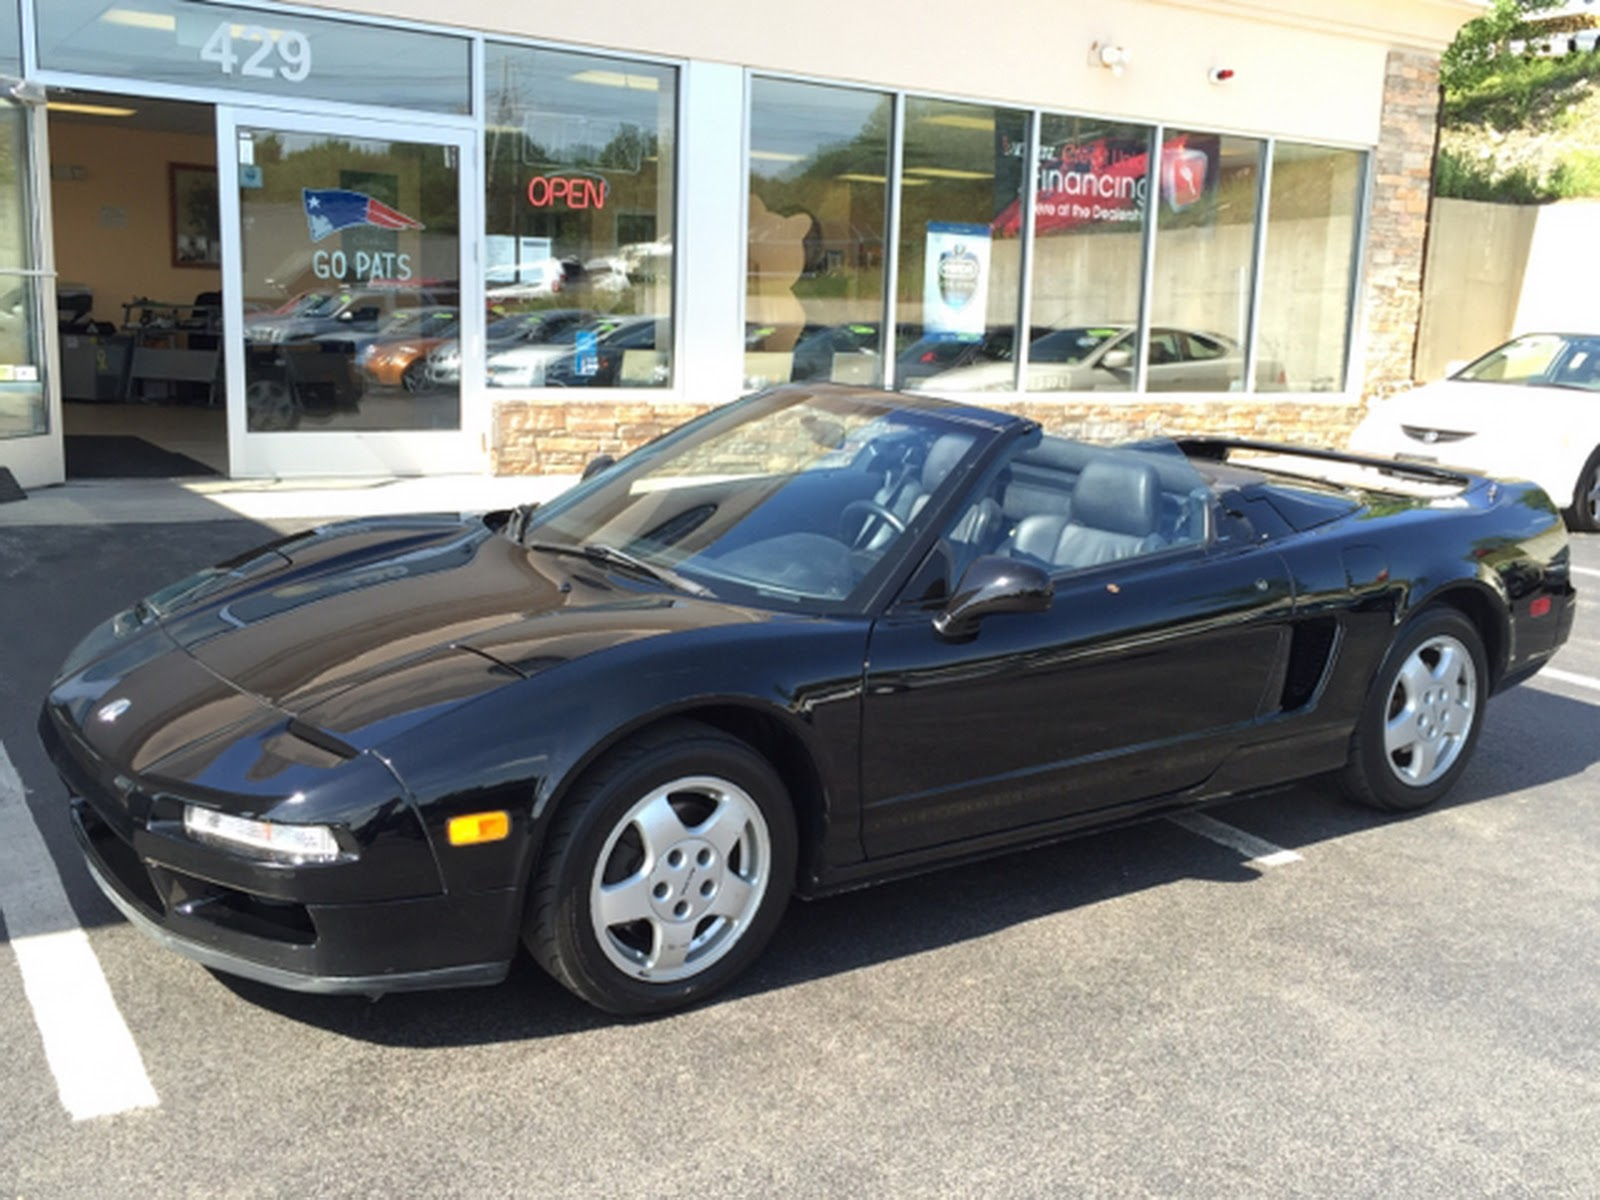 Someone Chopped An Acura NSX Into A Convertible And Is Now Asking $50k For It